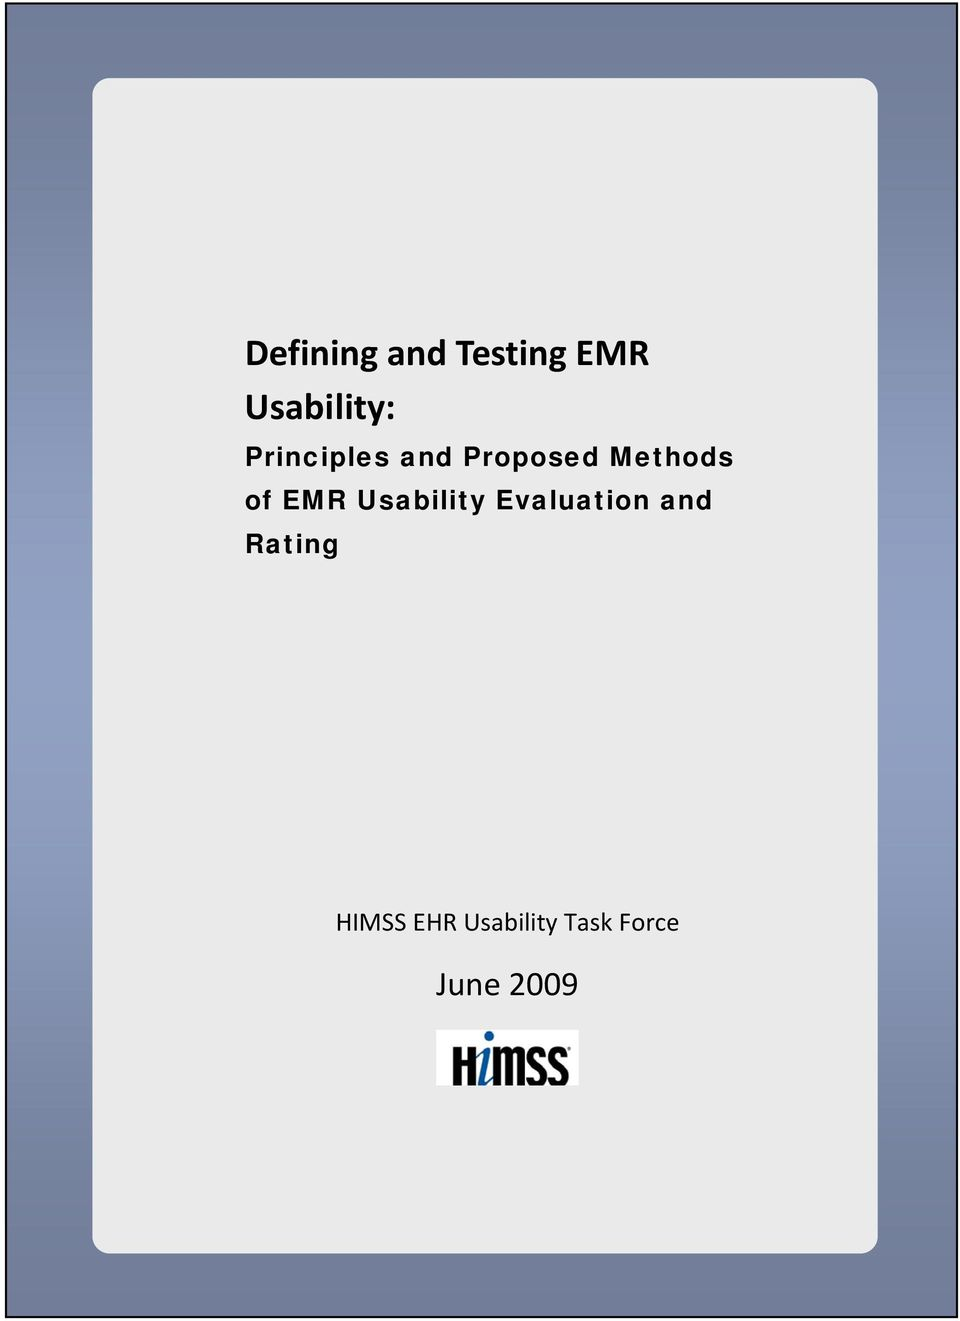 EMR Usability Evaluation and Rating